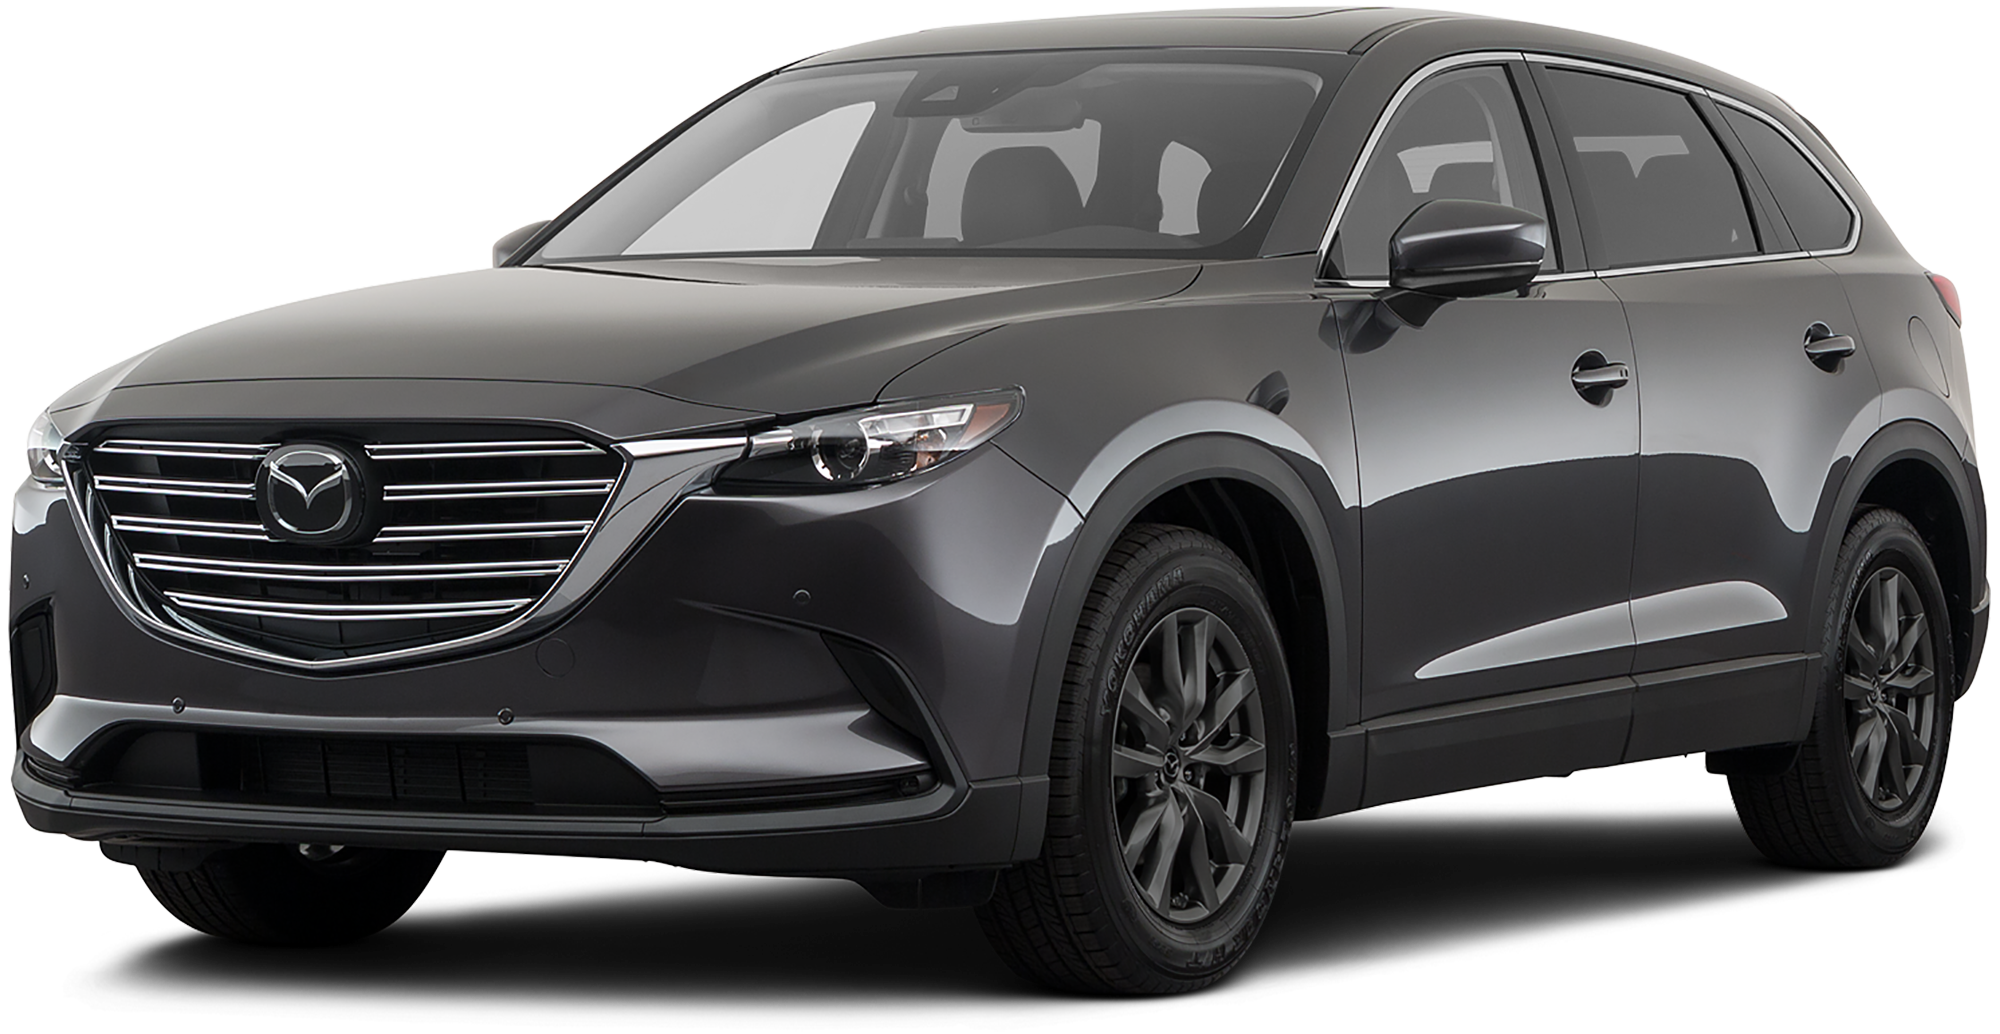 http://images.dealer.com/ddc/vehicles/2020/Mazda/CX-9/SUV/trim_Sport_a79dd6/perspective/front-left/2020_24.png